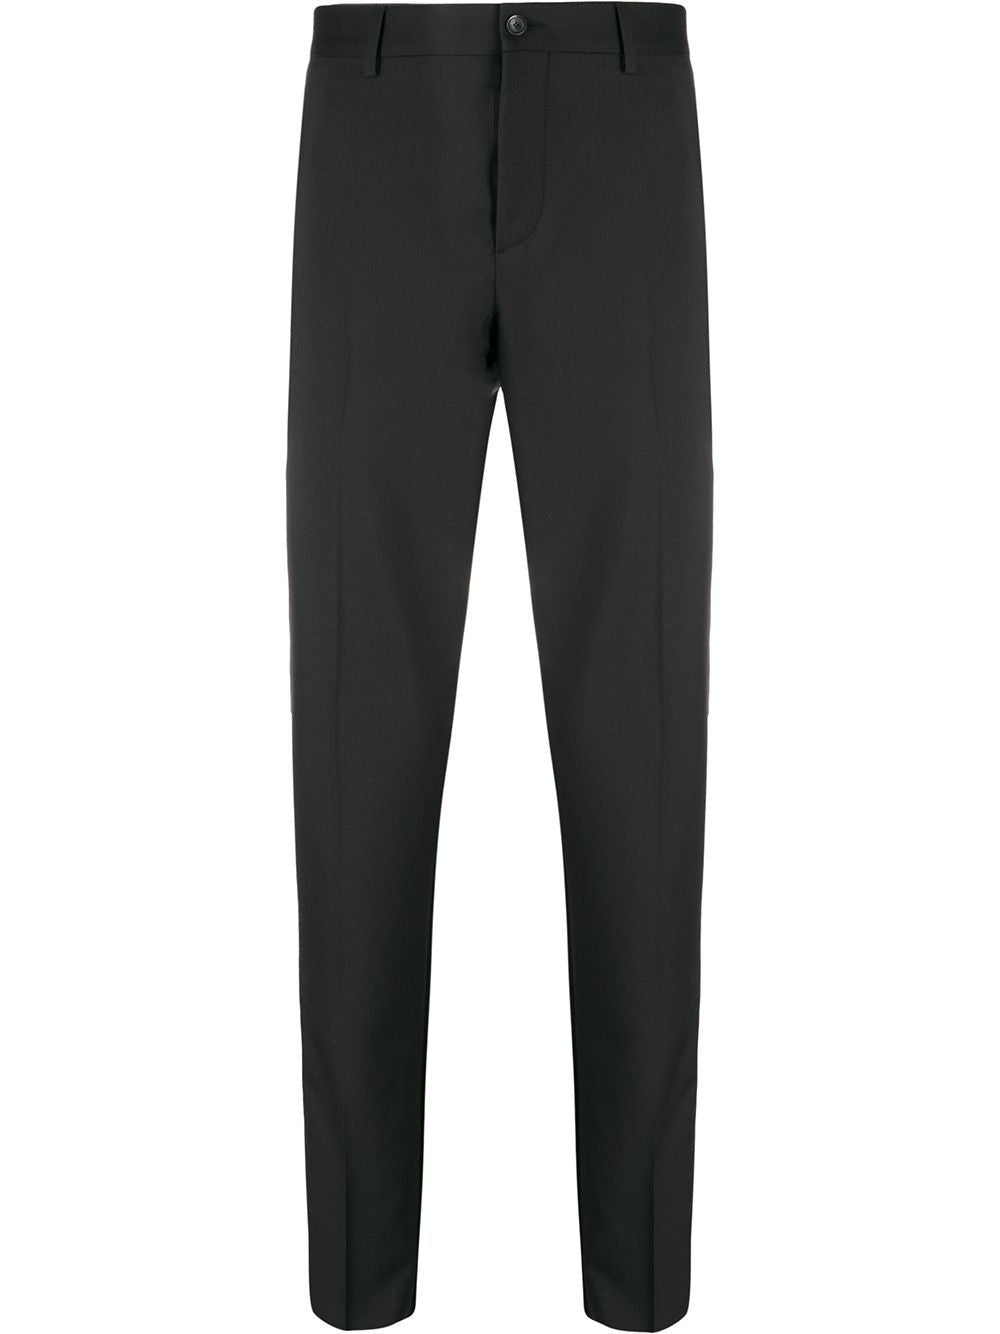 Black & White Stripe Panel Tailored Trousers